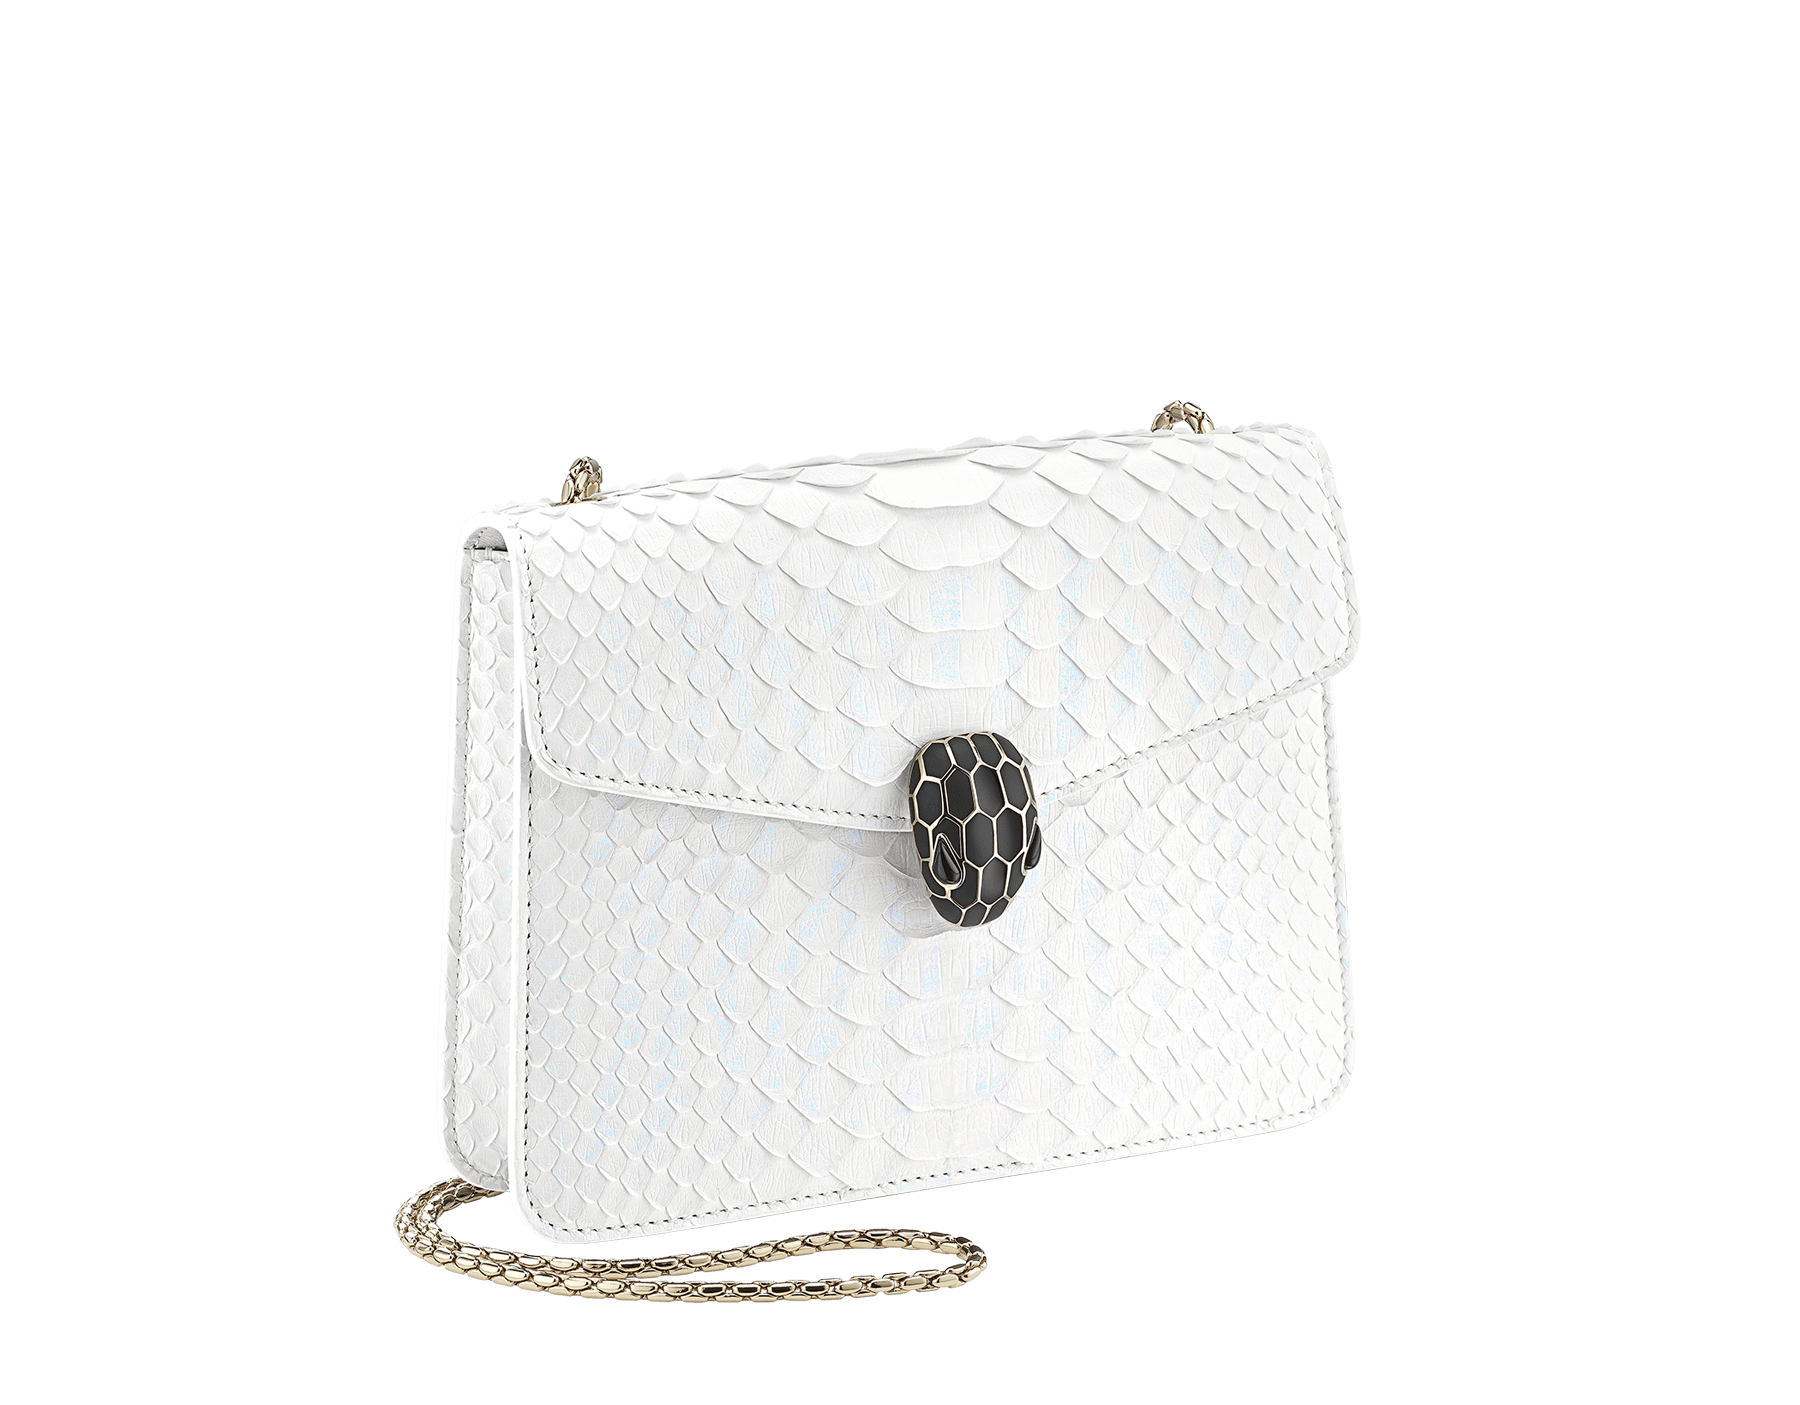 """Serpenti Forever"" crossbody bag in white agate python skin with an iridescent finishing. Iconic snake head closure in light gold plated brass enriched with matte and shiny black enamel, and black onyx eyes. 422-Pa image 2"